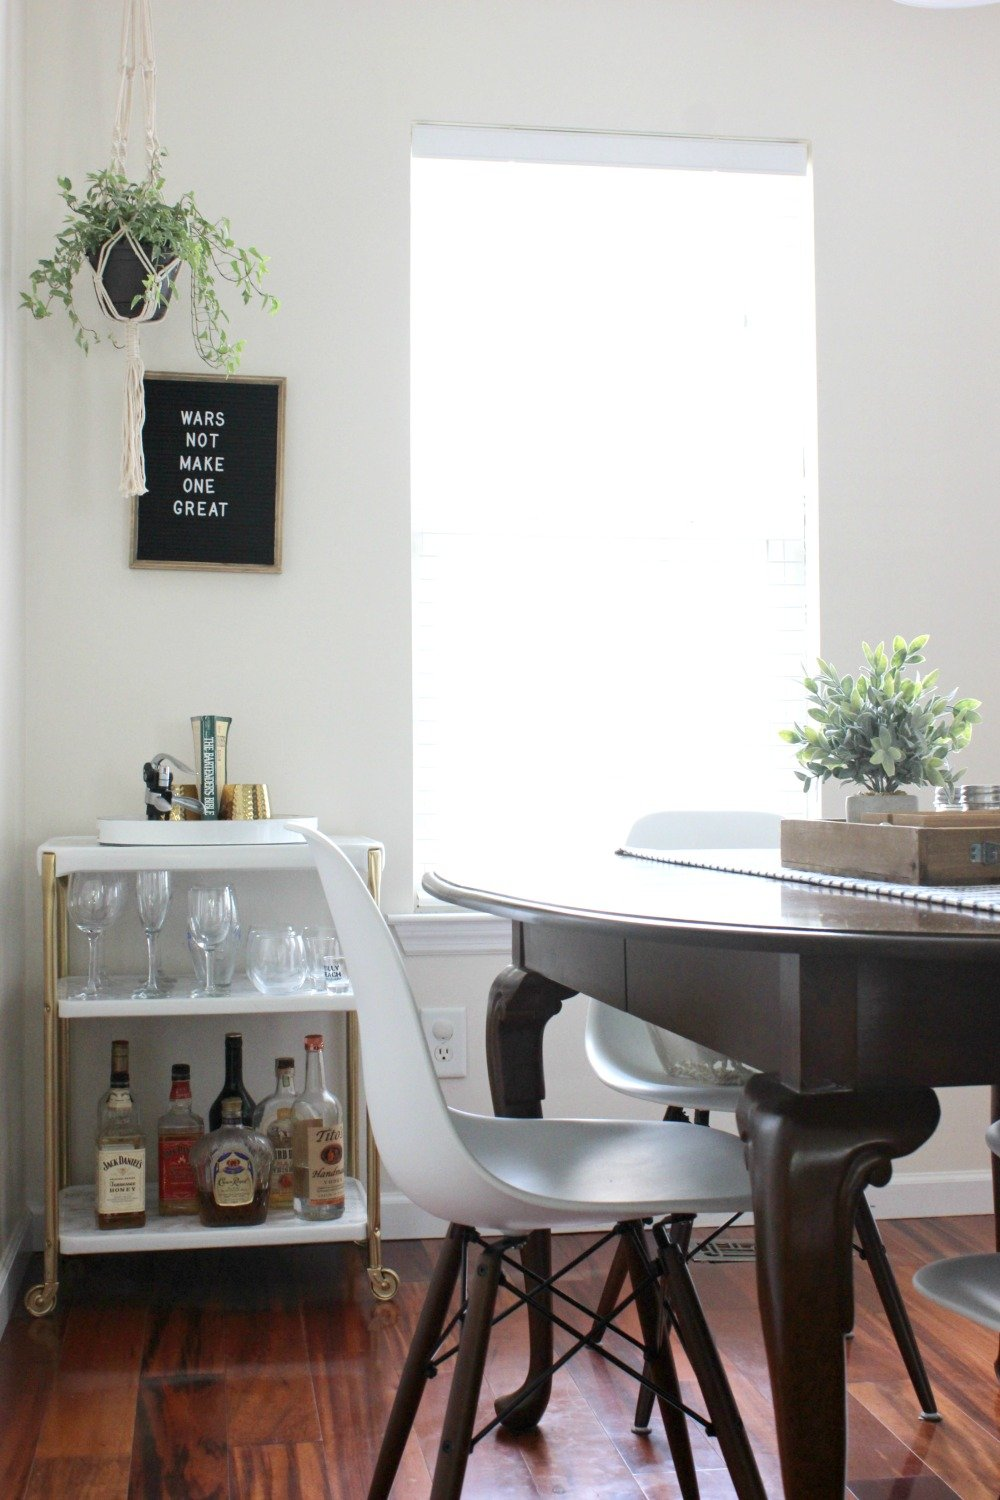 stocked self-serve bar cart